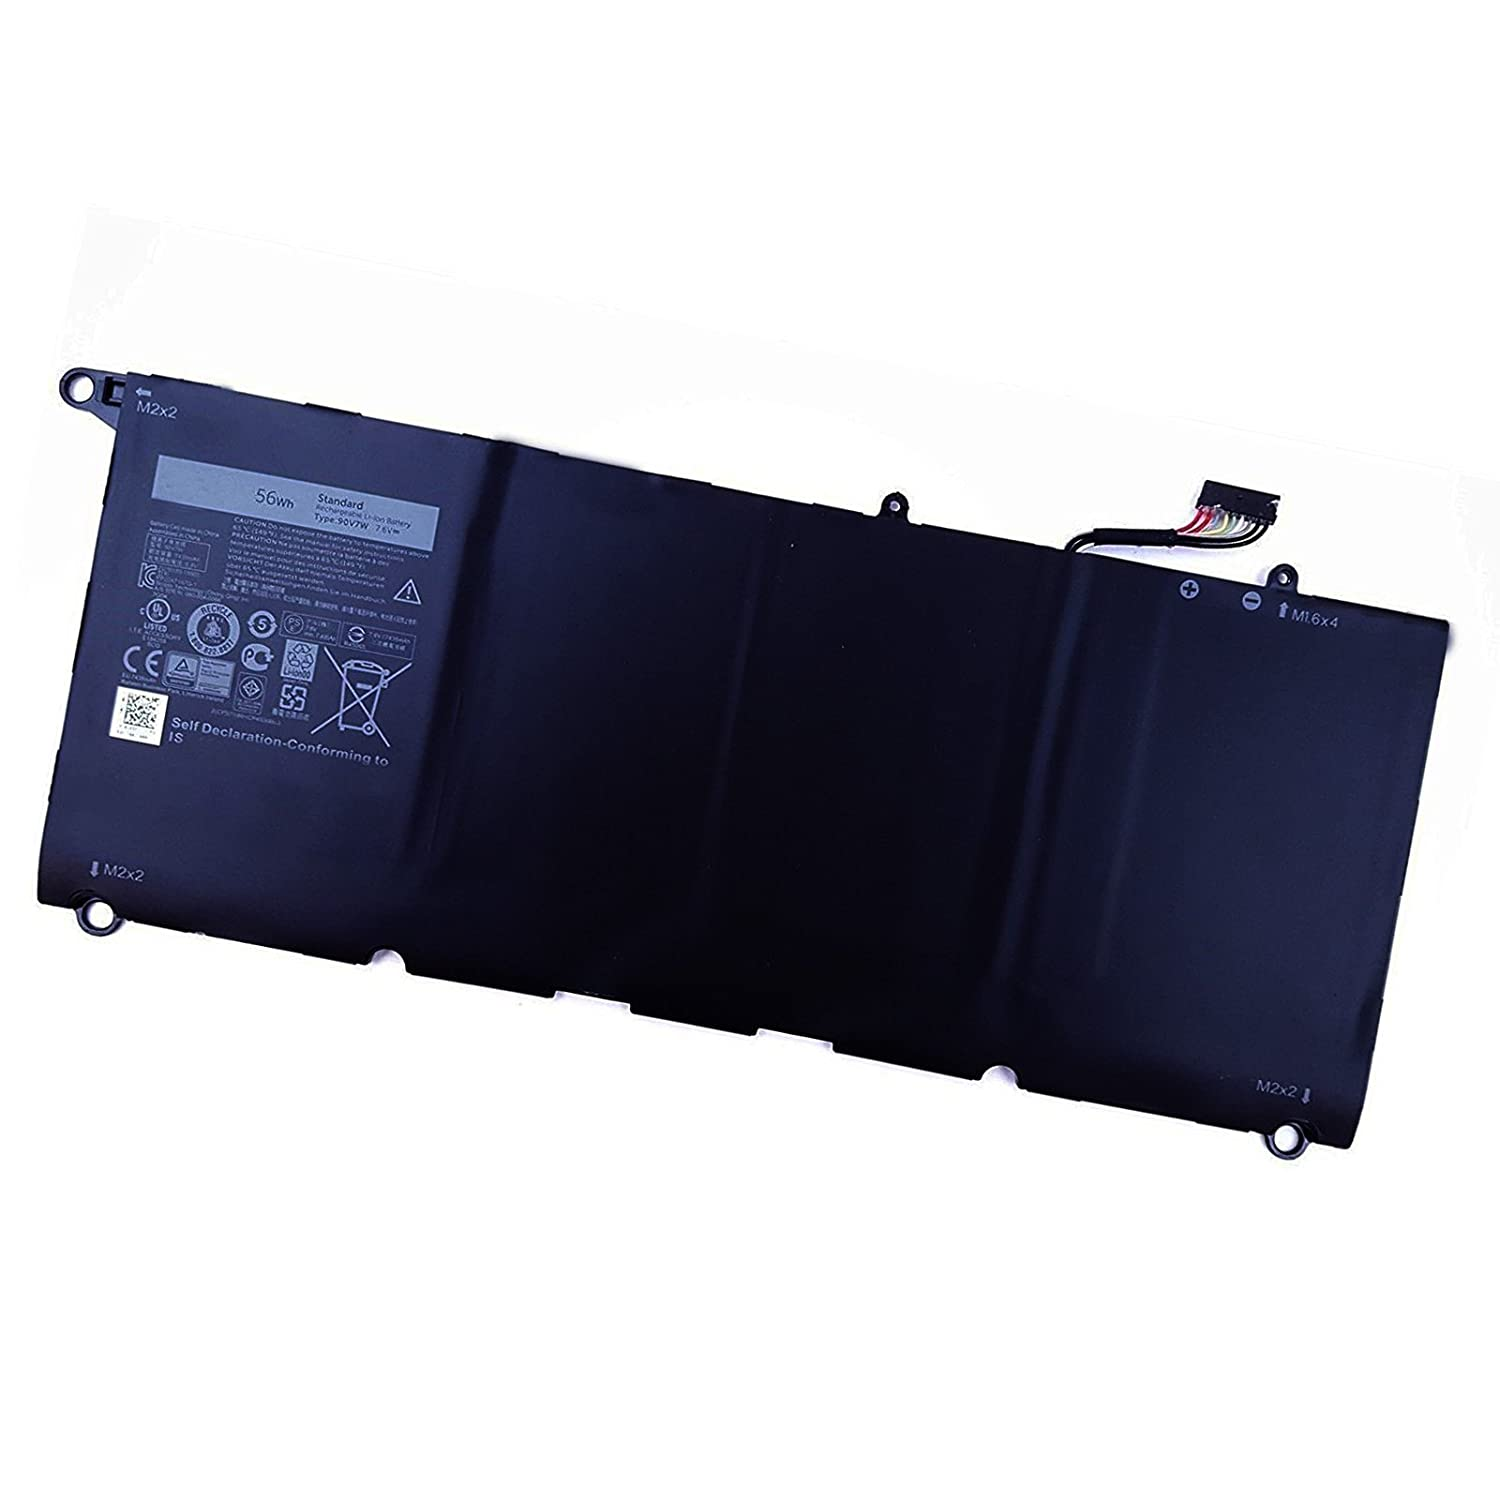 Amazon.com: SUNNEAR 56Wh 90V7W Battery for Dell XPS13-9350 Laptop 5K9CP DIN02 JD25G: Computers & Accessories